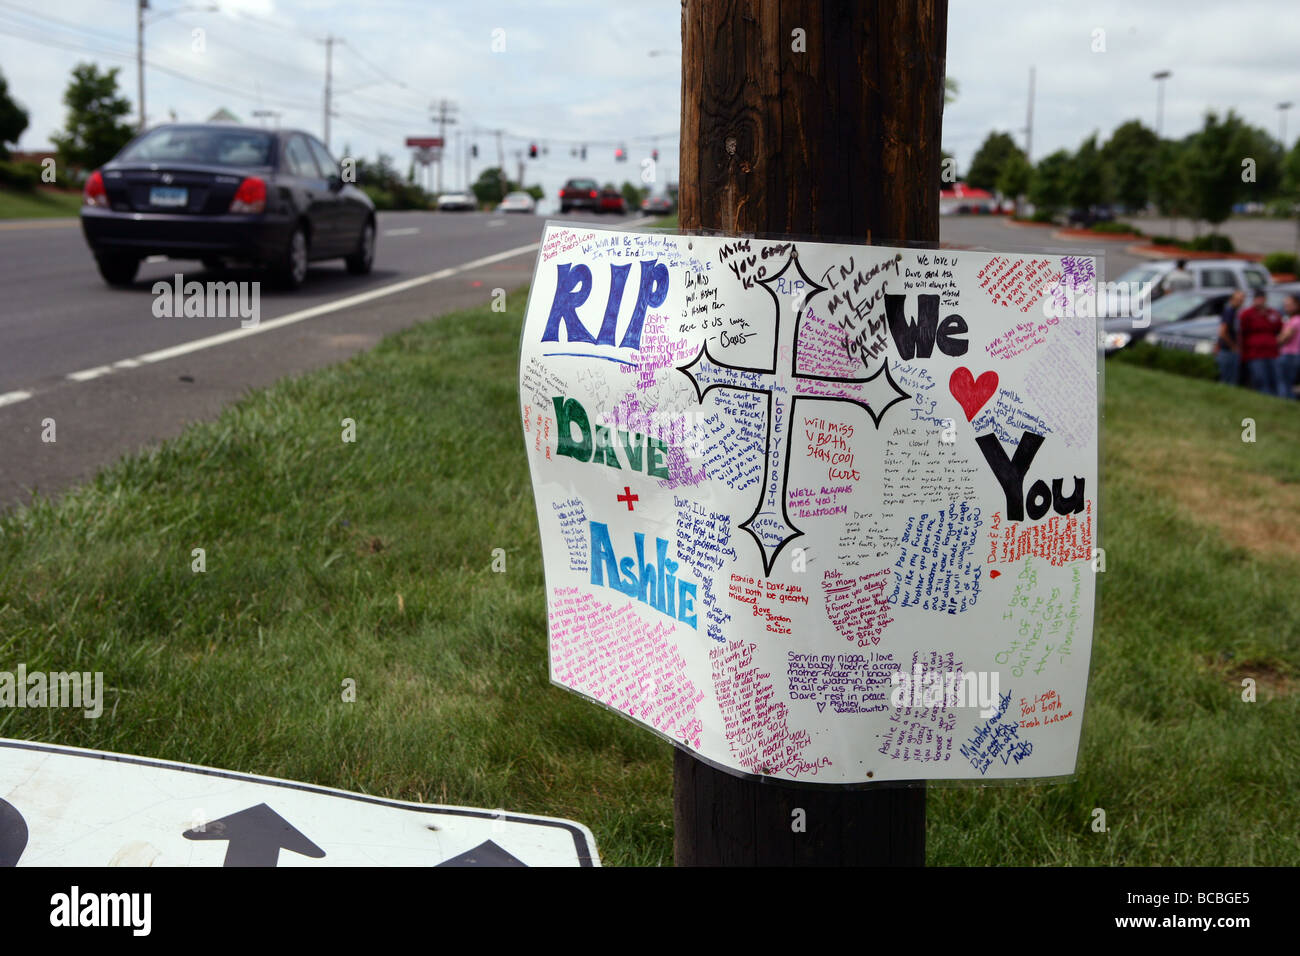 A Roadside memorial marks the spot where two Connecticut Teens were killed in a DUI collision with a Police officer - Stock Image